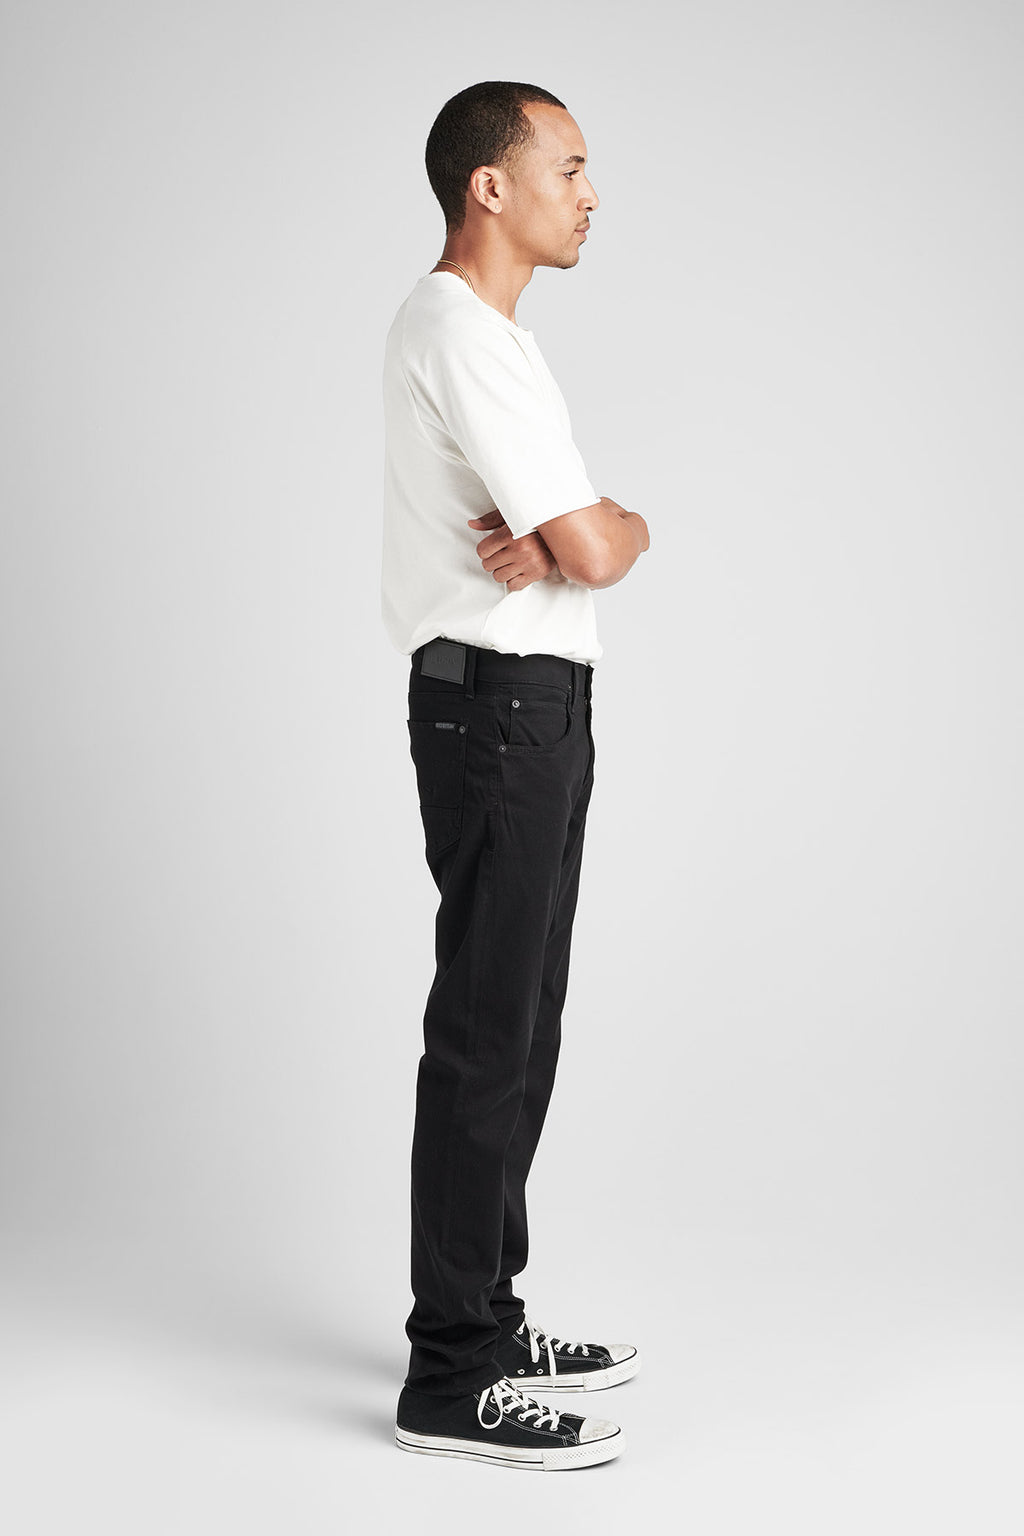 BLAKE SLIM STRAIGHT TWILL JEAN - BLACKENED - Image 2